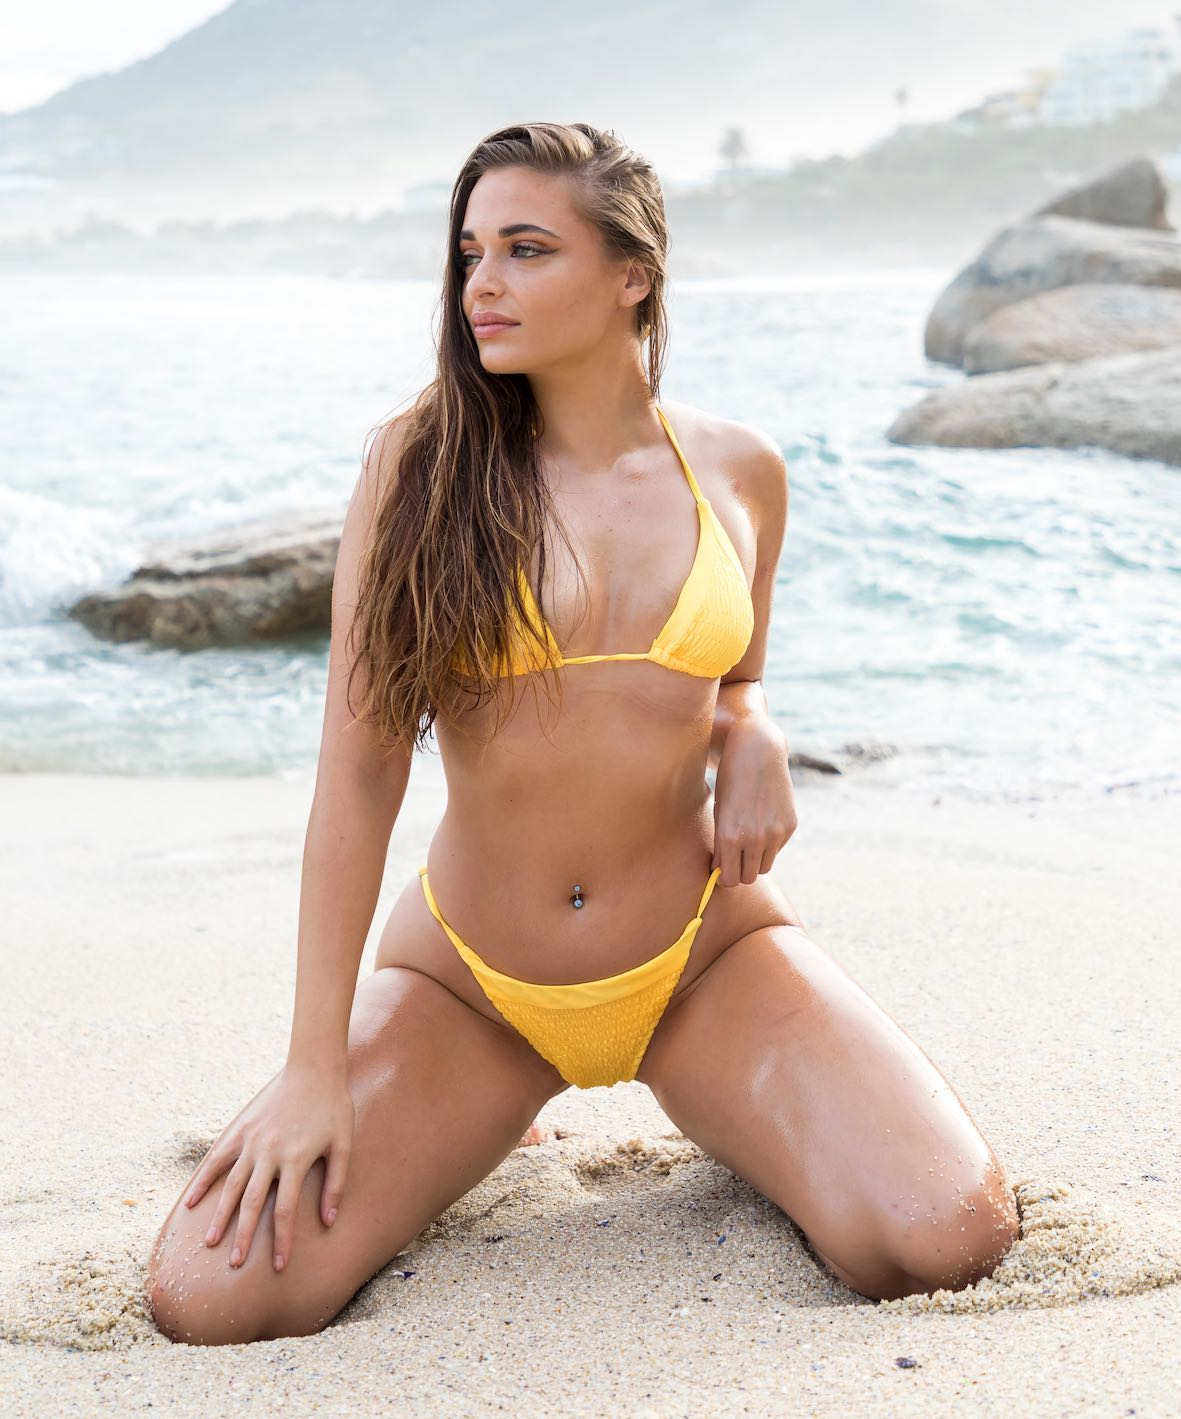 Our South African Babes feature with Mia le Roux